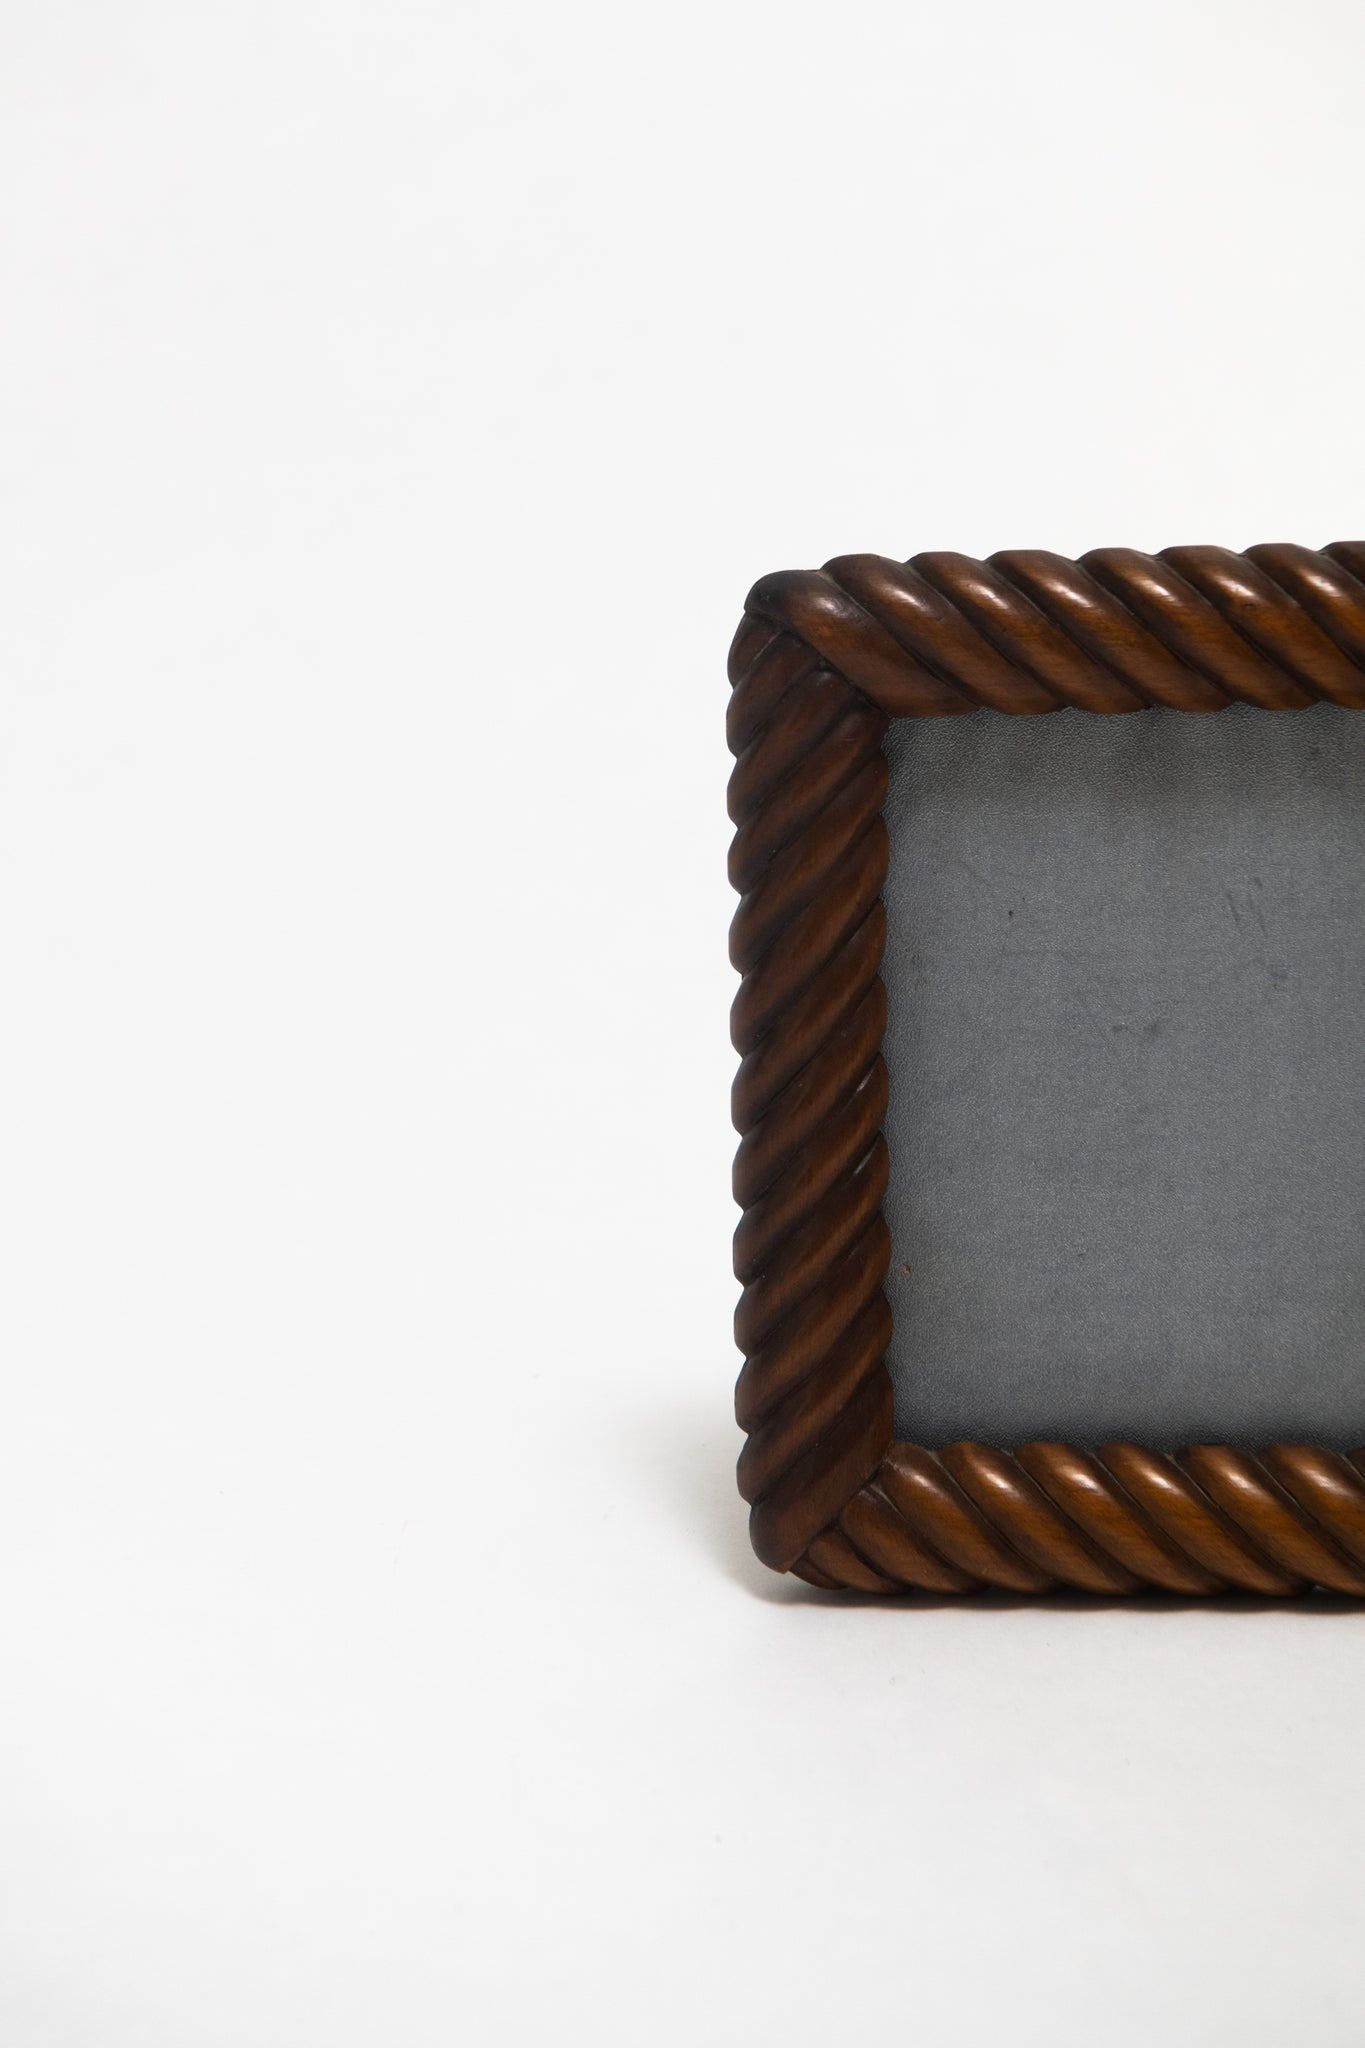 FRENCH, MID-CENTURY ROPE PHOTO FRAME, C. 1950